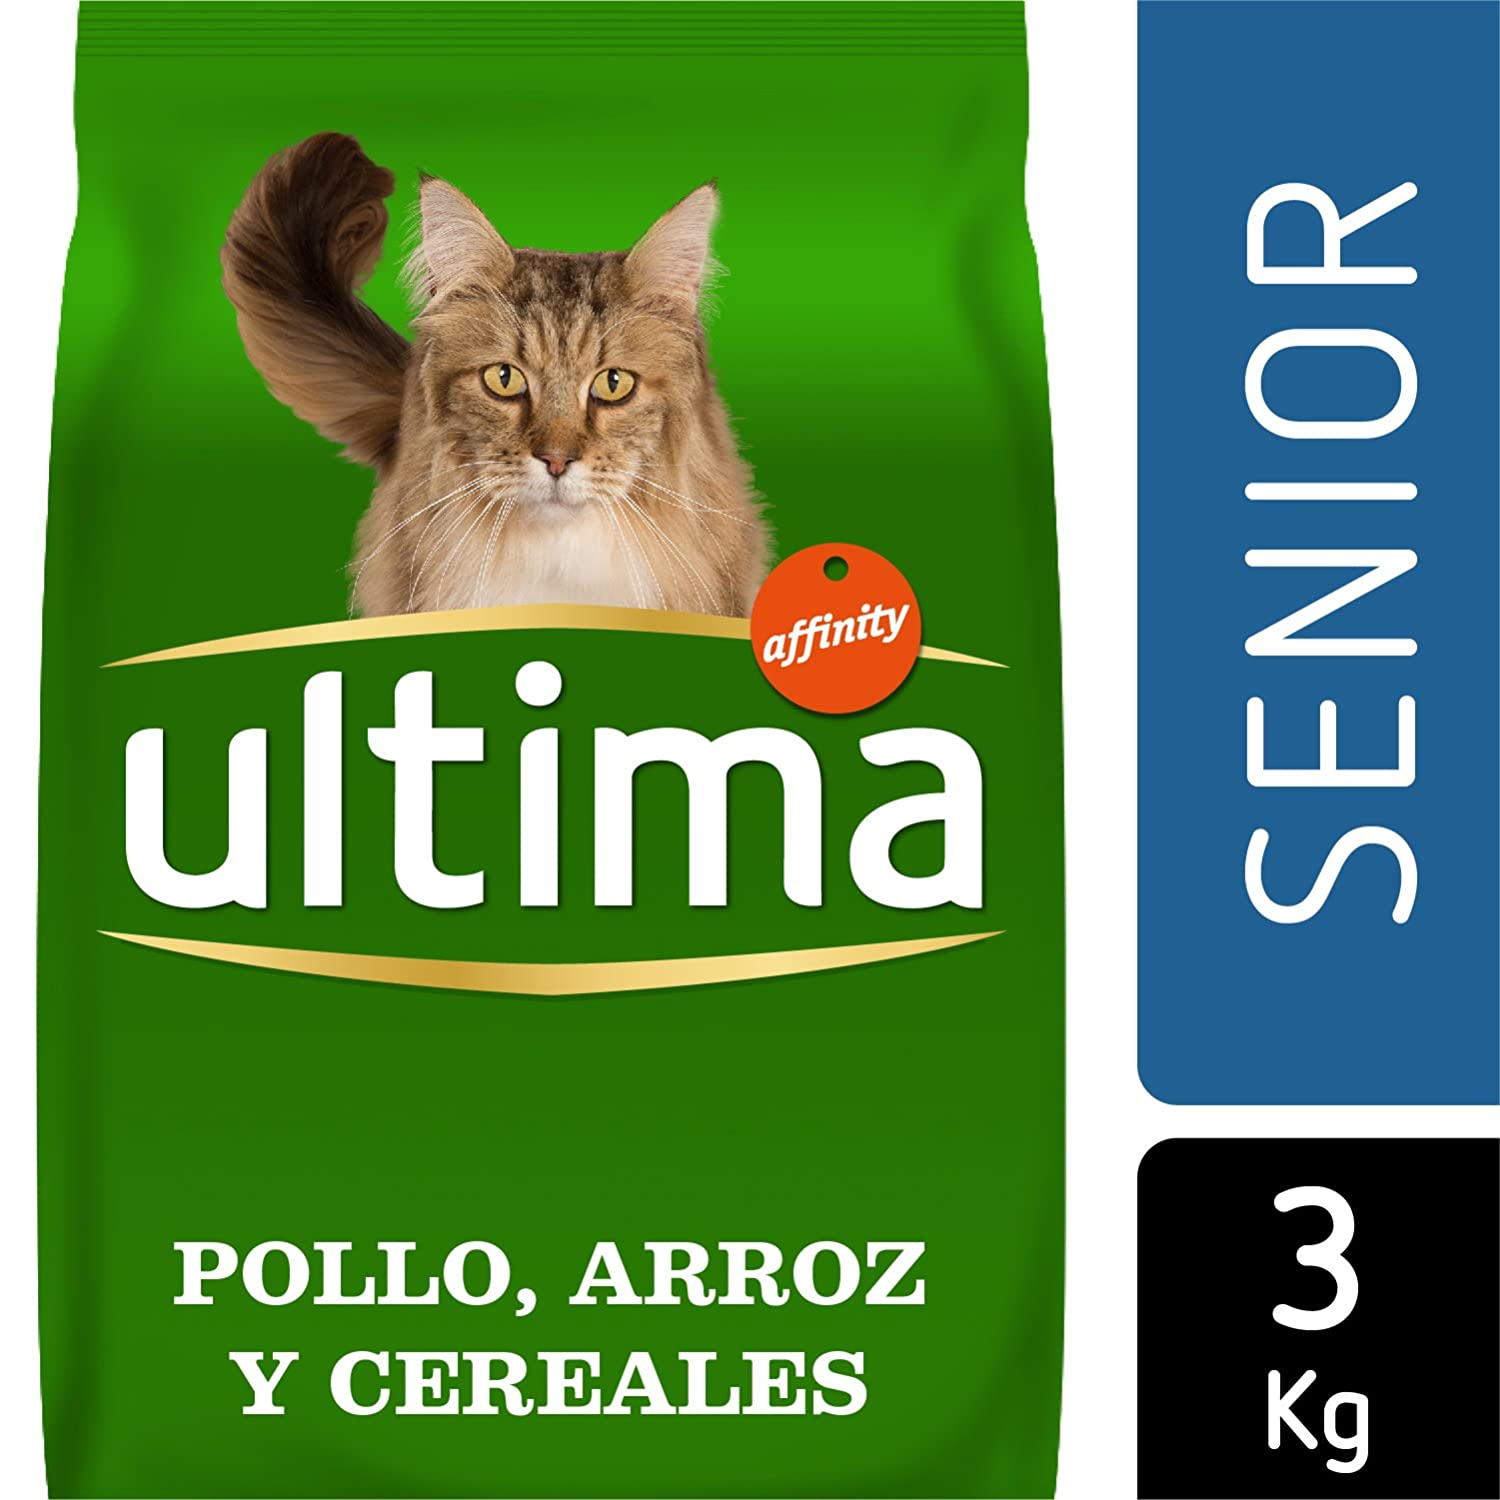 Ultima Pienso para Gatos Senior +10 años con Pollo: Amazon.es: Productos para mascotas